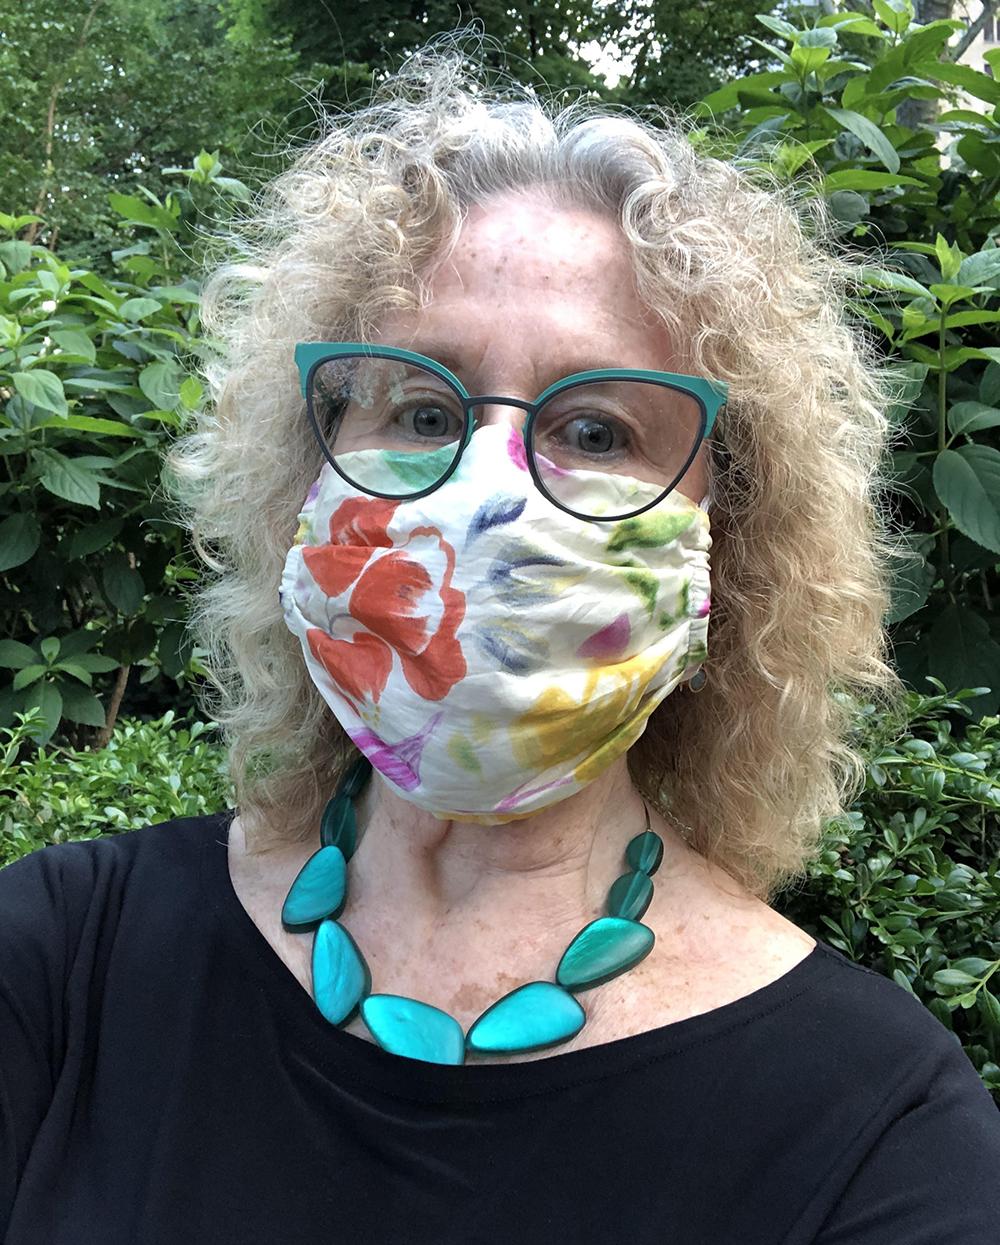 Executive Director of the Association for Public Art, outside with a floral mask on